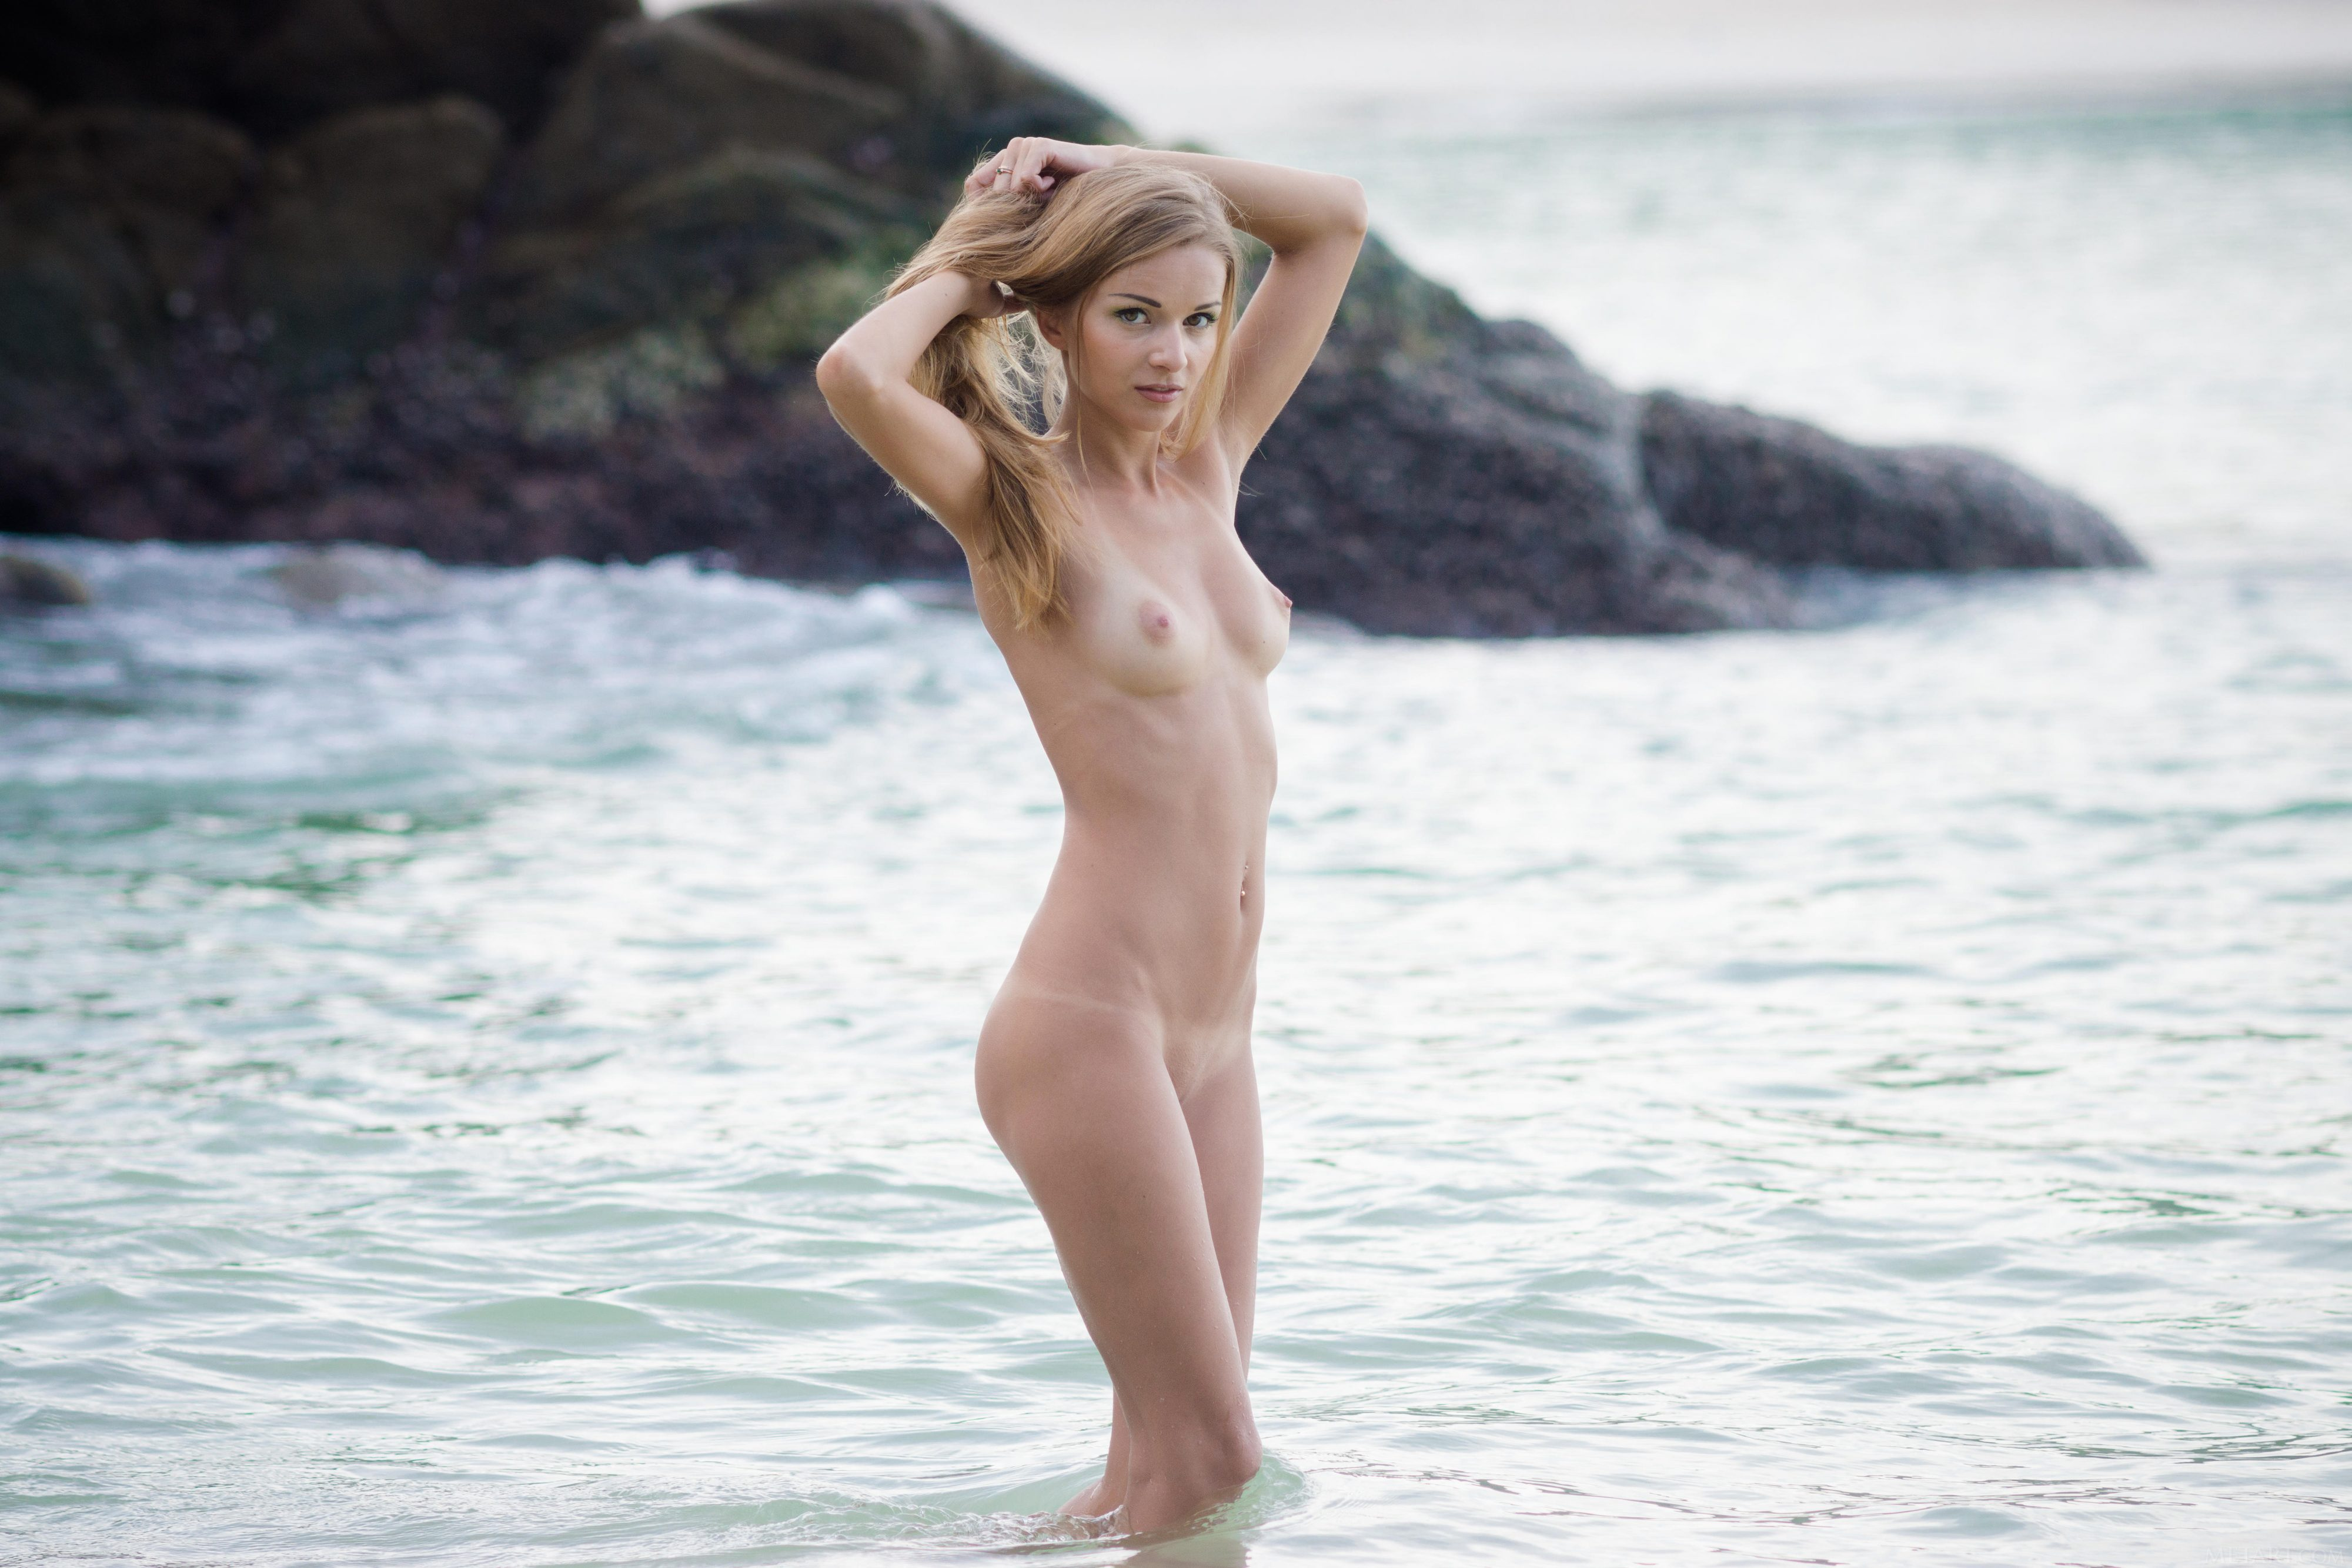 Young Girl Nude Swimming At College Avril On